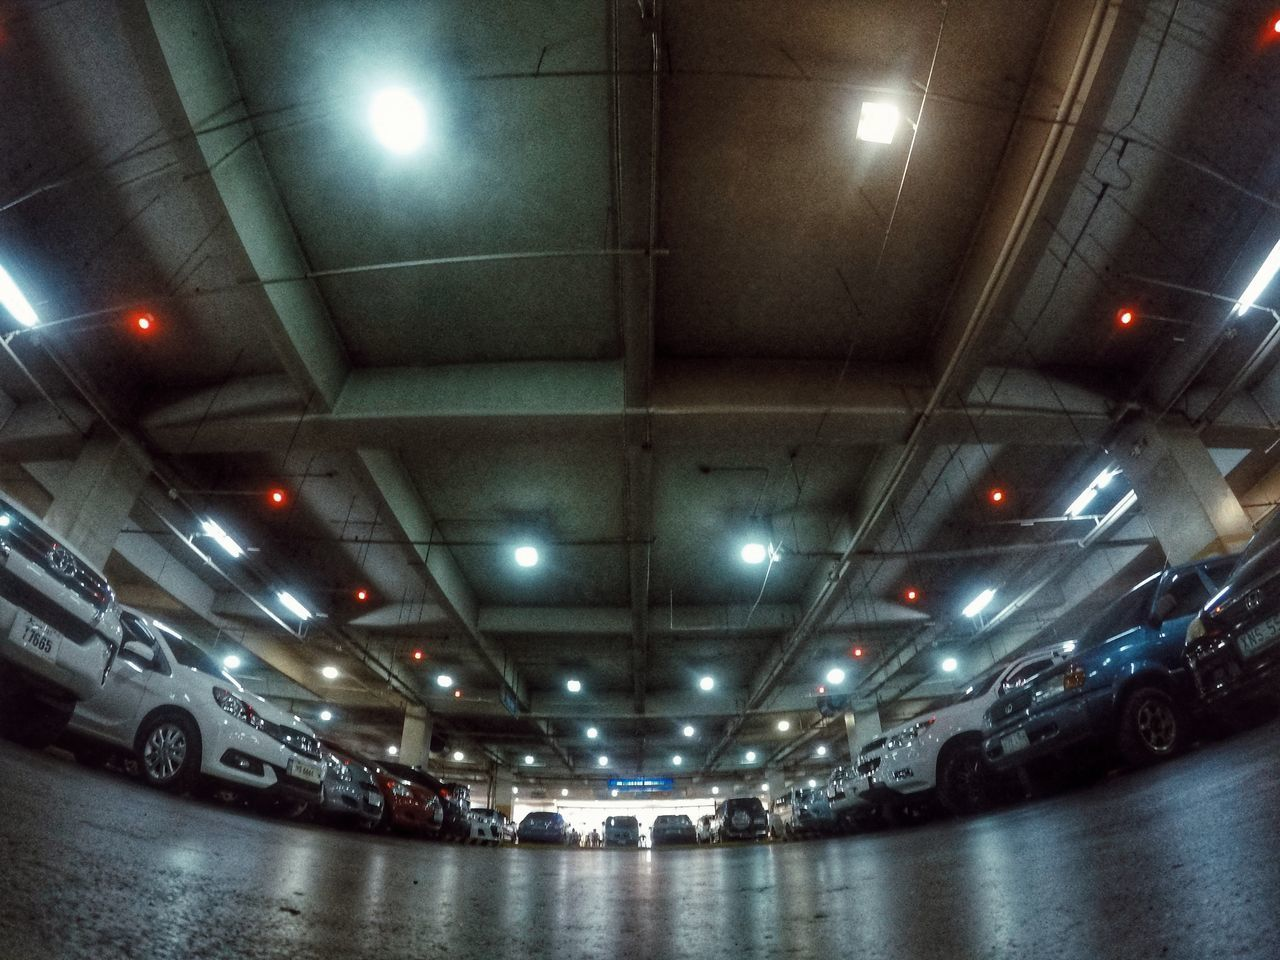 illuminated, ceiling, indoors, lighting equipment, architecture, built structure, transportation, mode of transport, land vehicle, no people, night, parking garage